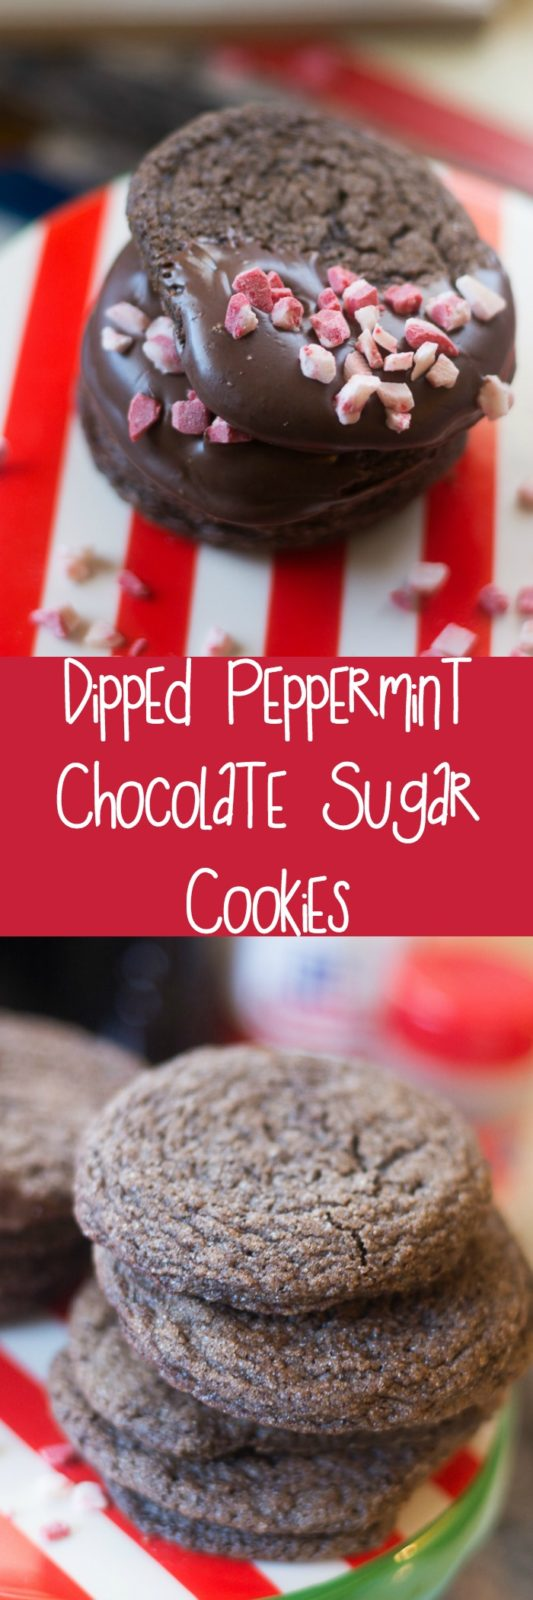 These cookies are out of this world! Dipper peppermint chocolate sugar cookies - perfect for Christmas! They are great un-dipped as well (not a fan of peppermint? Use vanilla instead!)